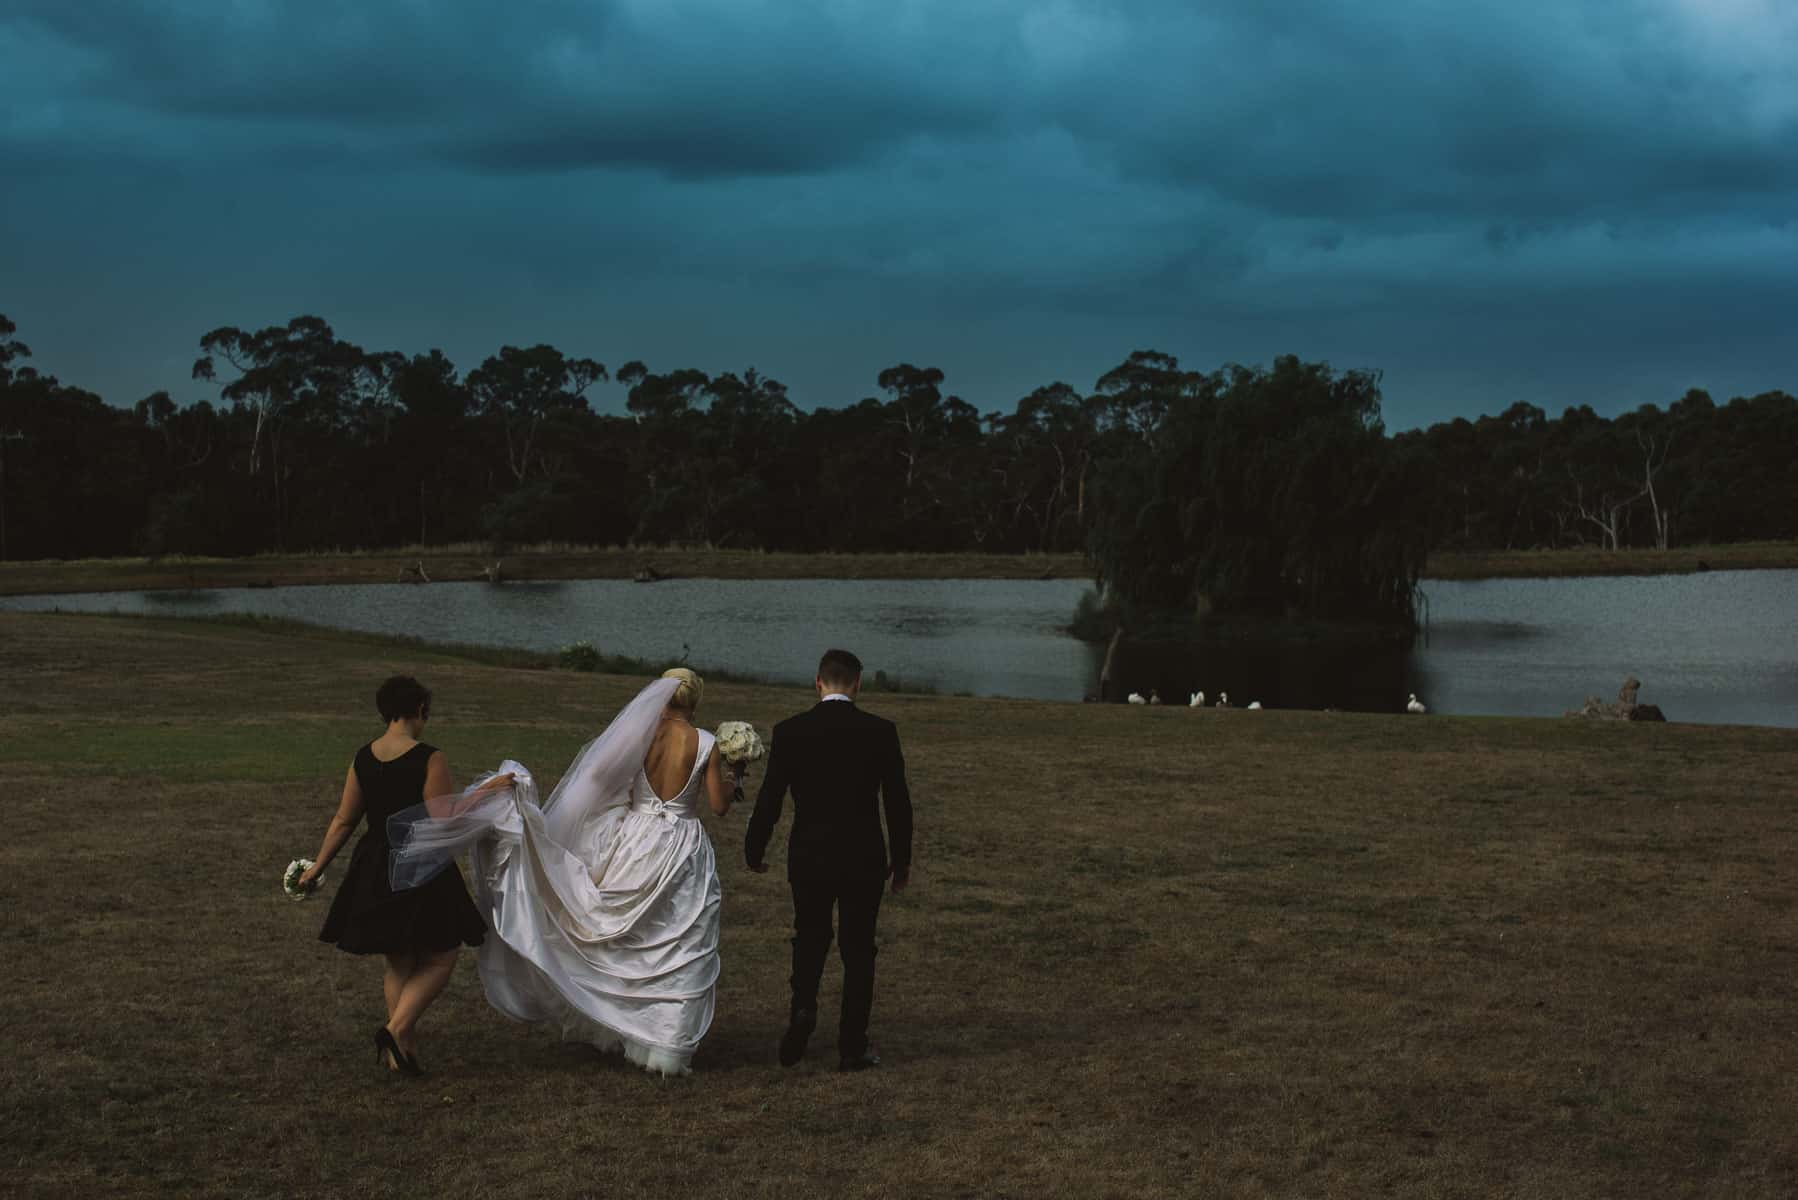 Moody portrait of wedding couple with stormy sky